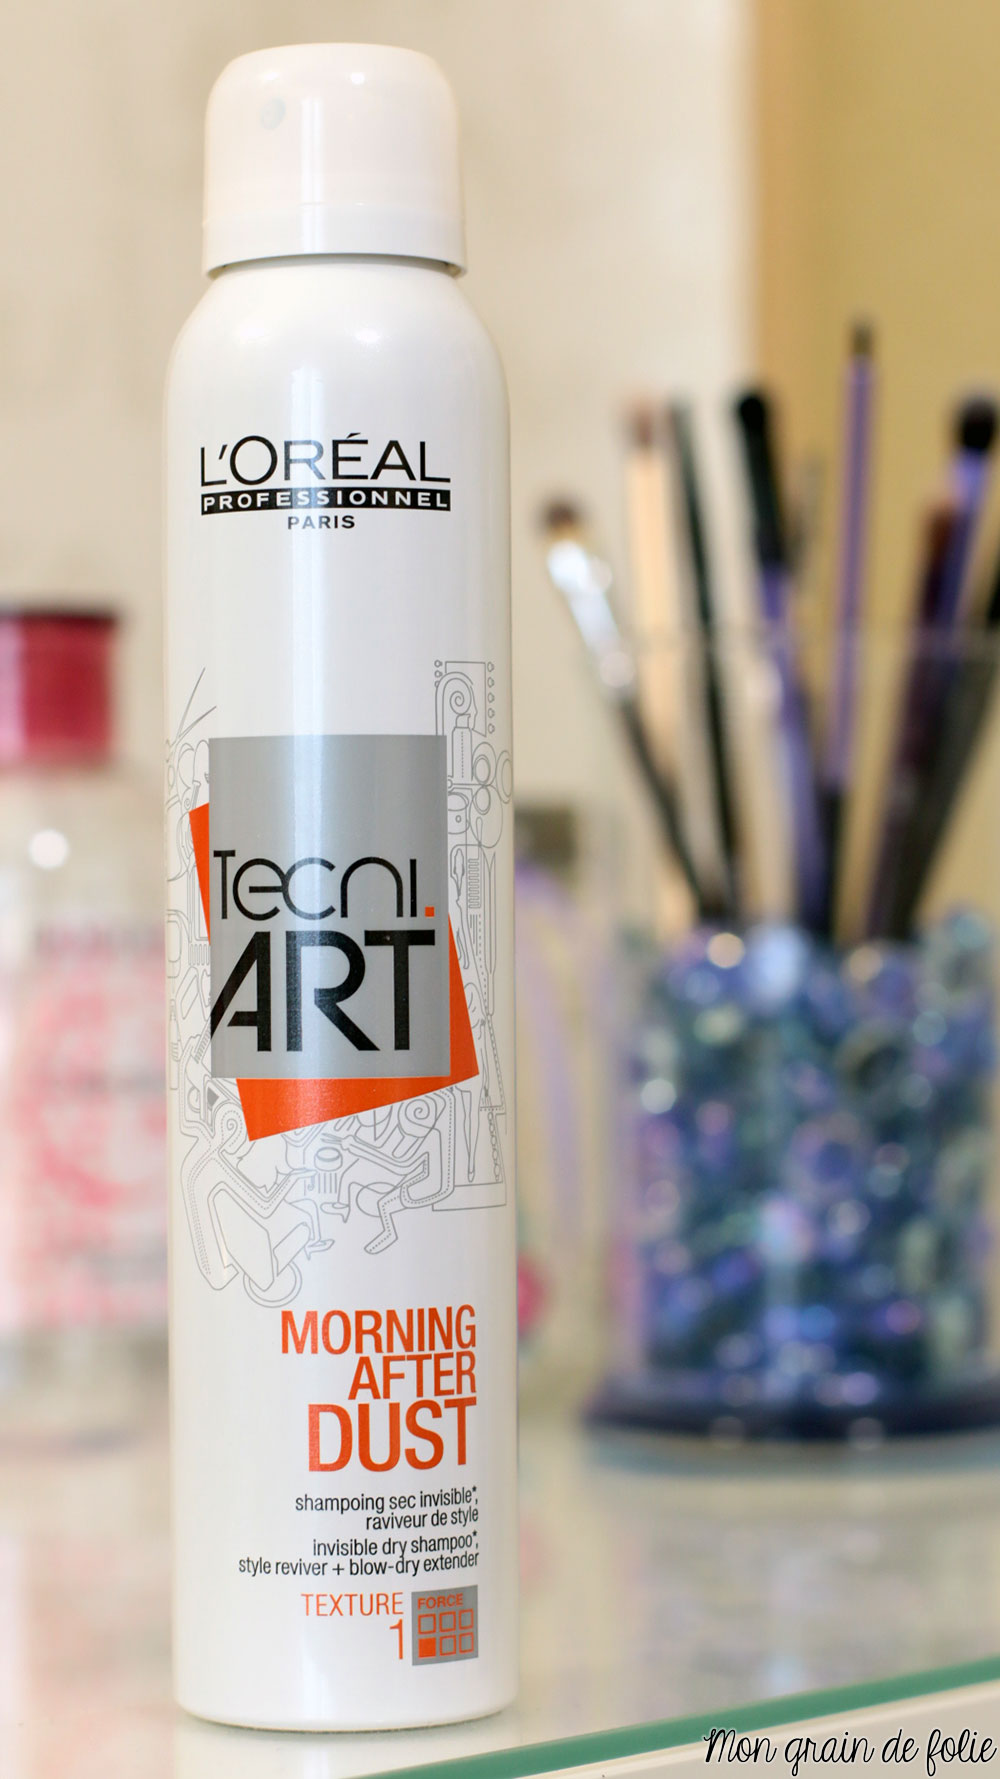 shampoing-sec-morning-after-dust-loreal-gouiran4